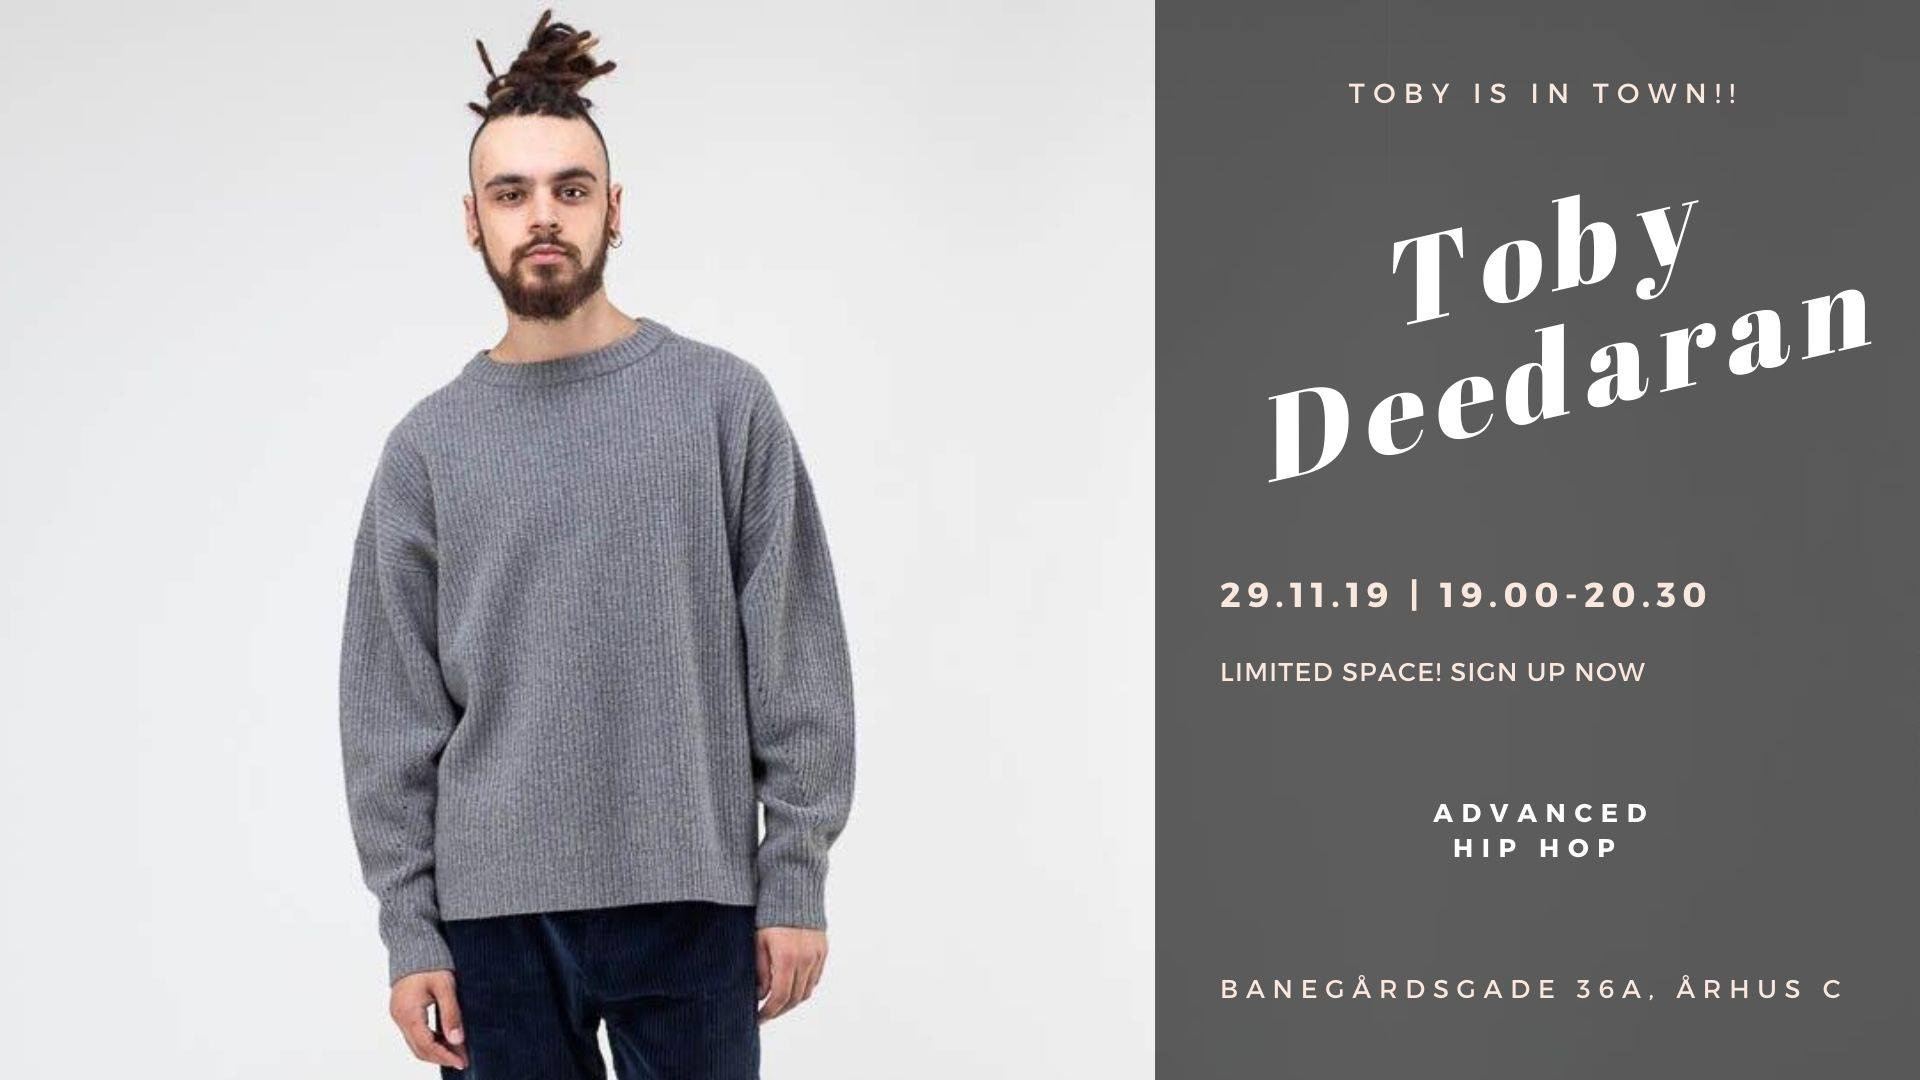 Toby Deedaran x Workshop